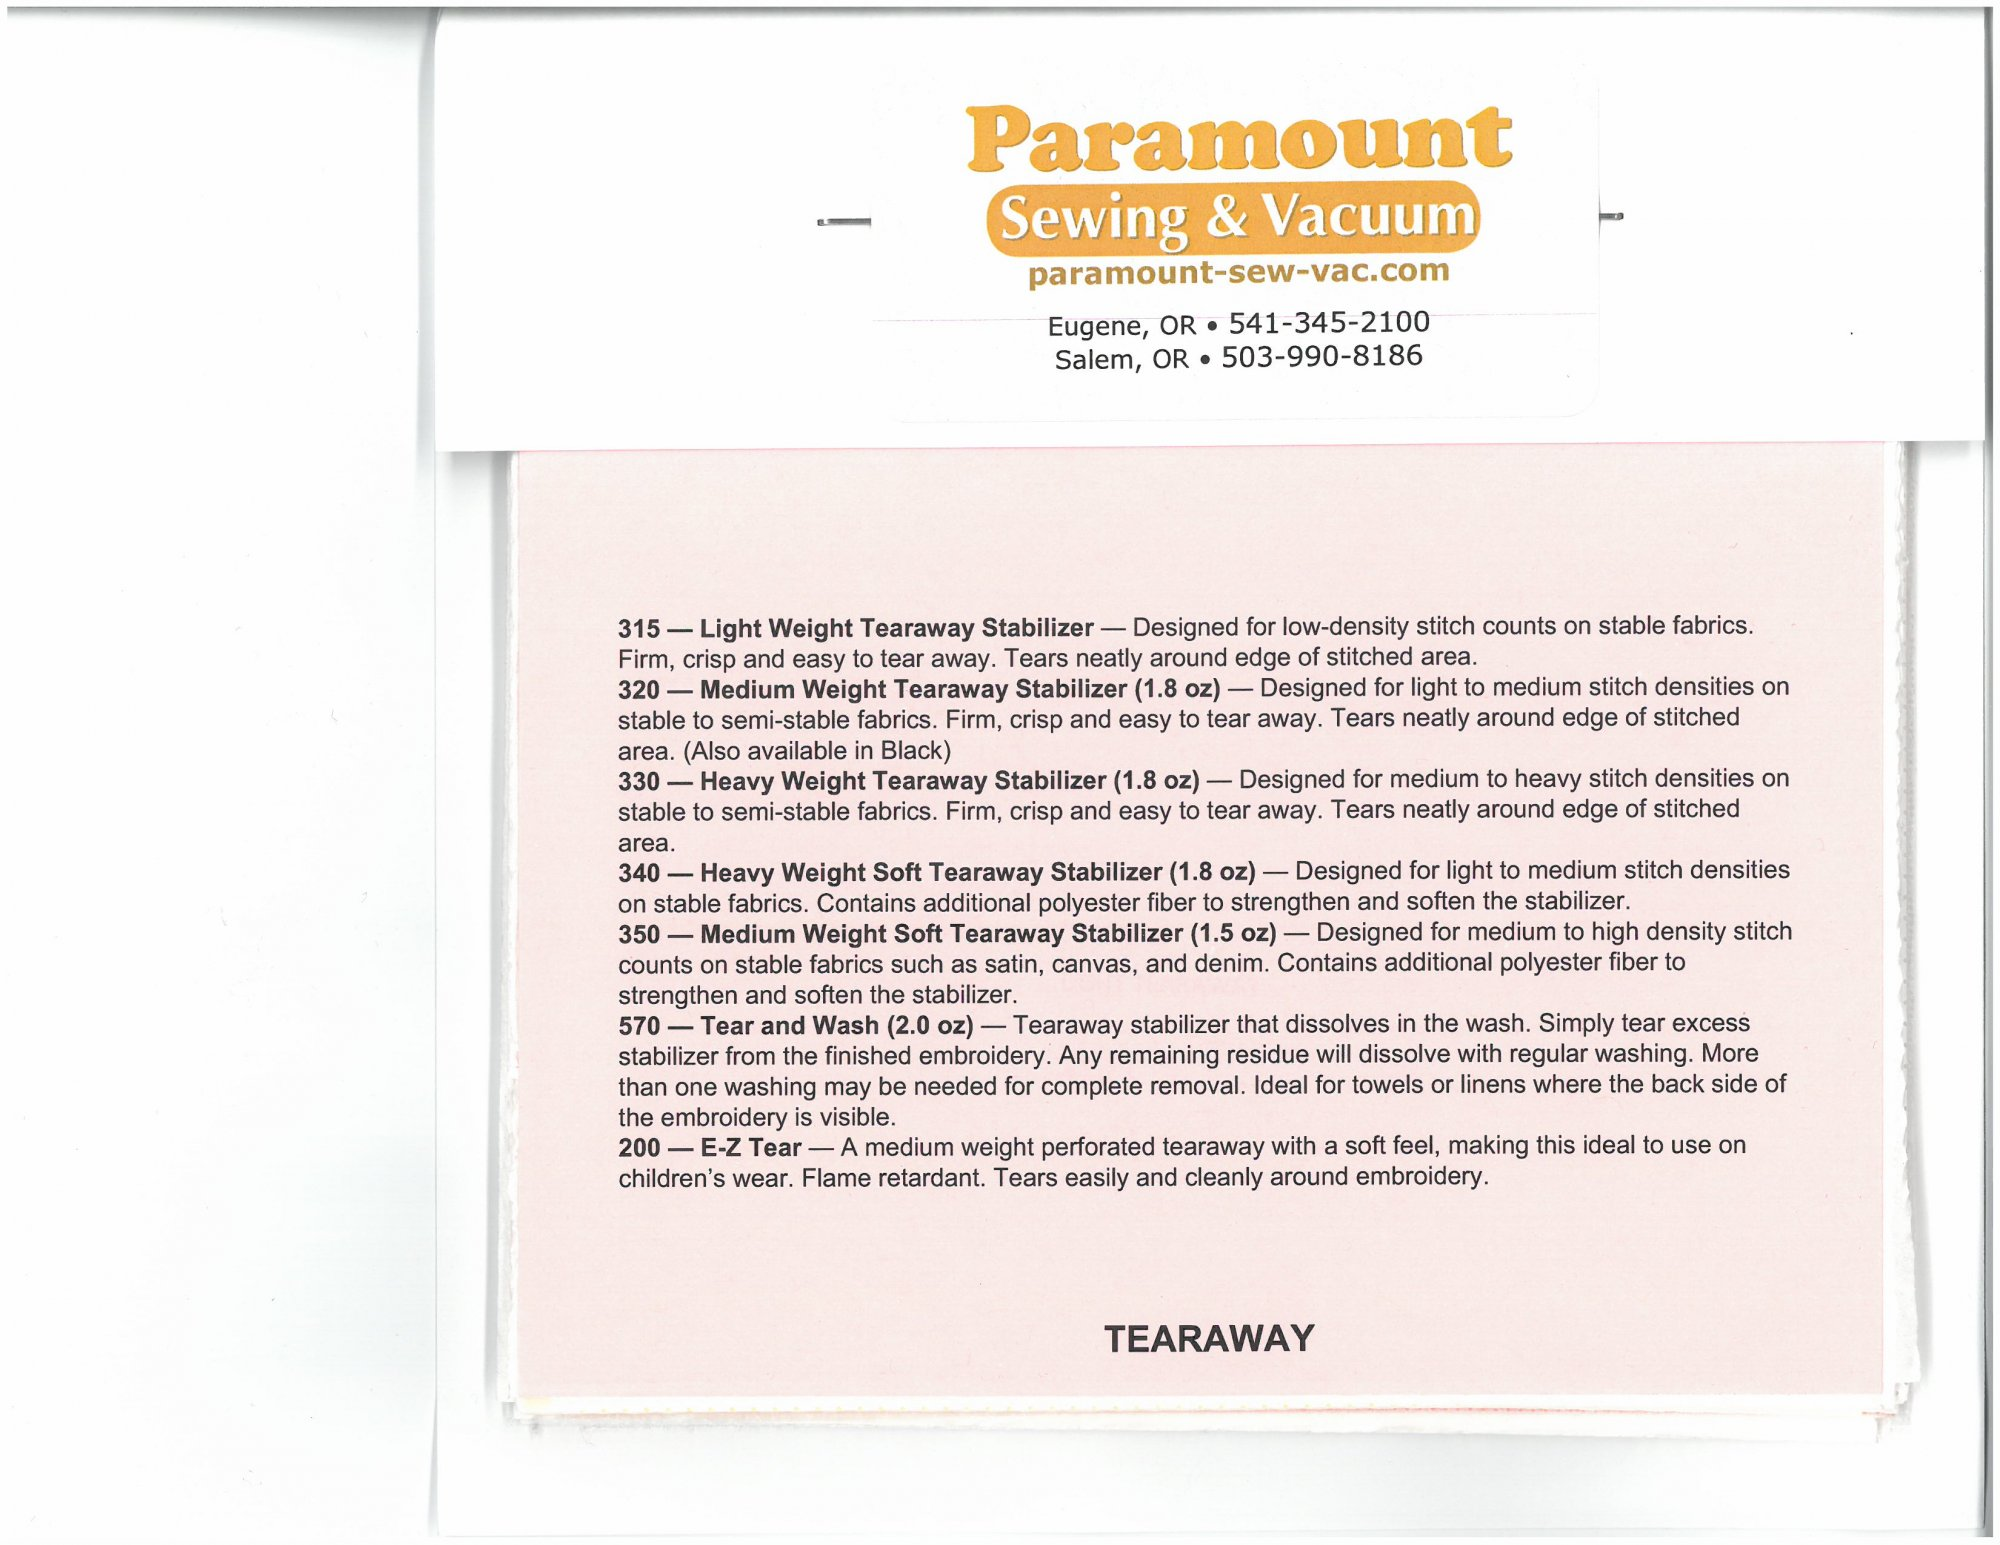 Paramount Stabilizer: Sampler Pack of Stabilizers w/descriptions